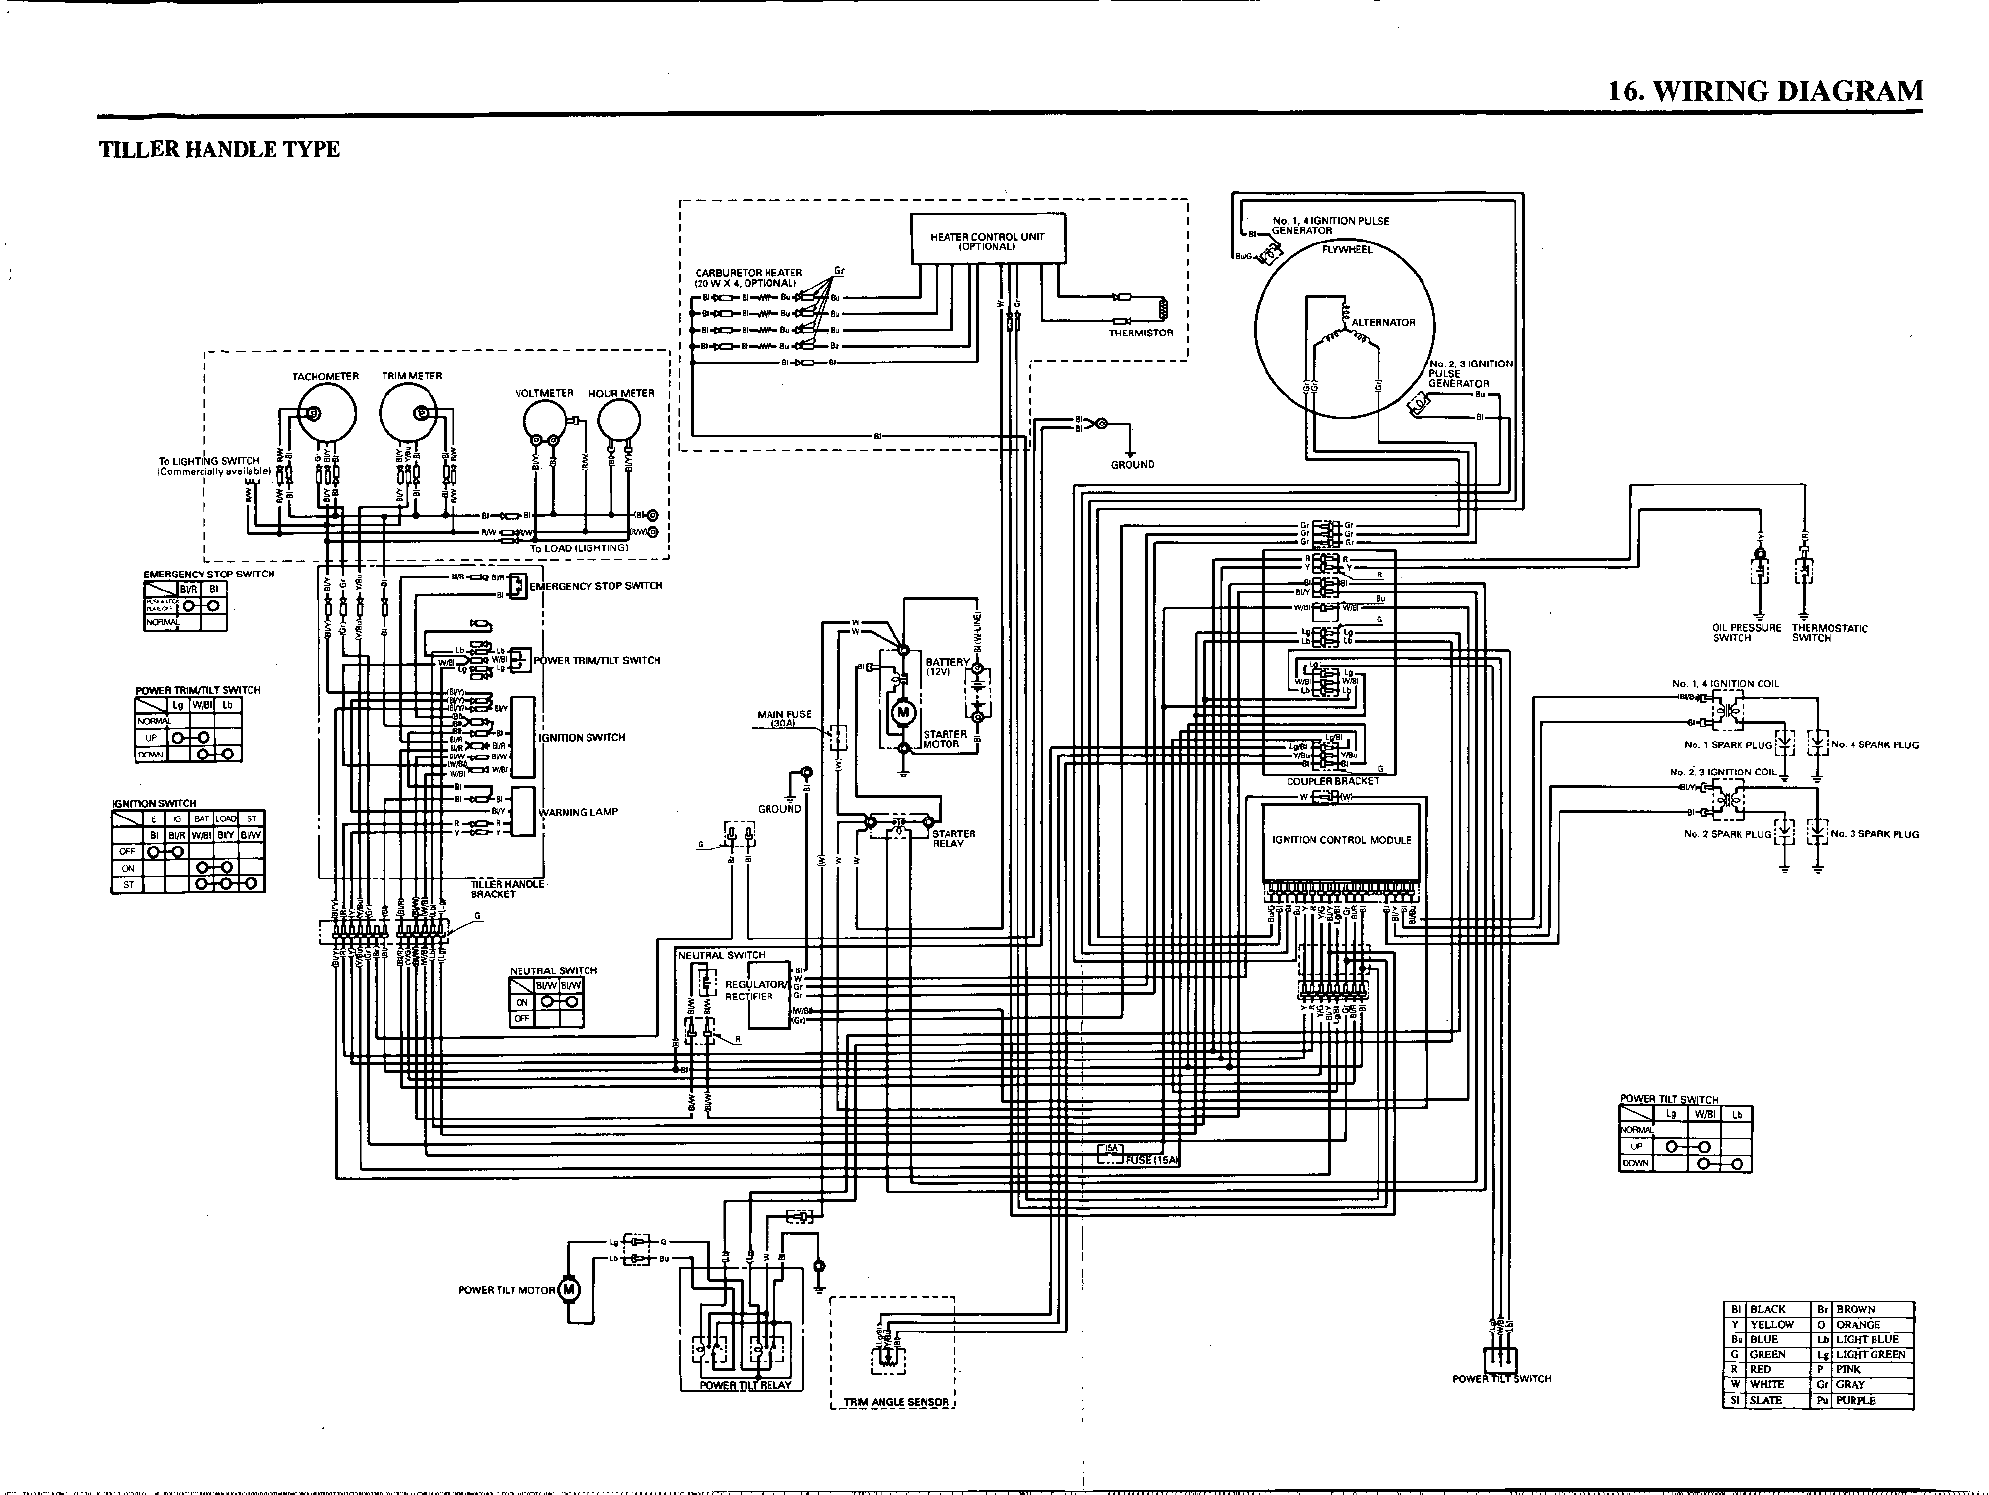 Yamaha outboard motor wiring diagrams the diagram